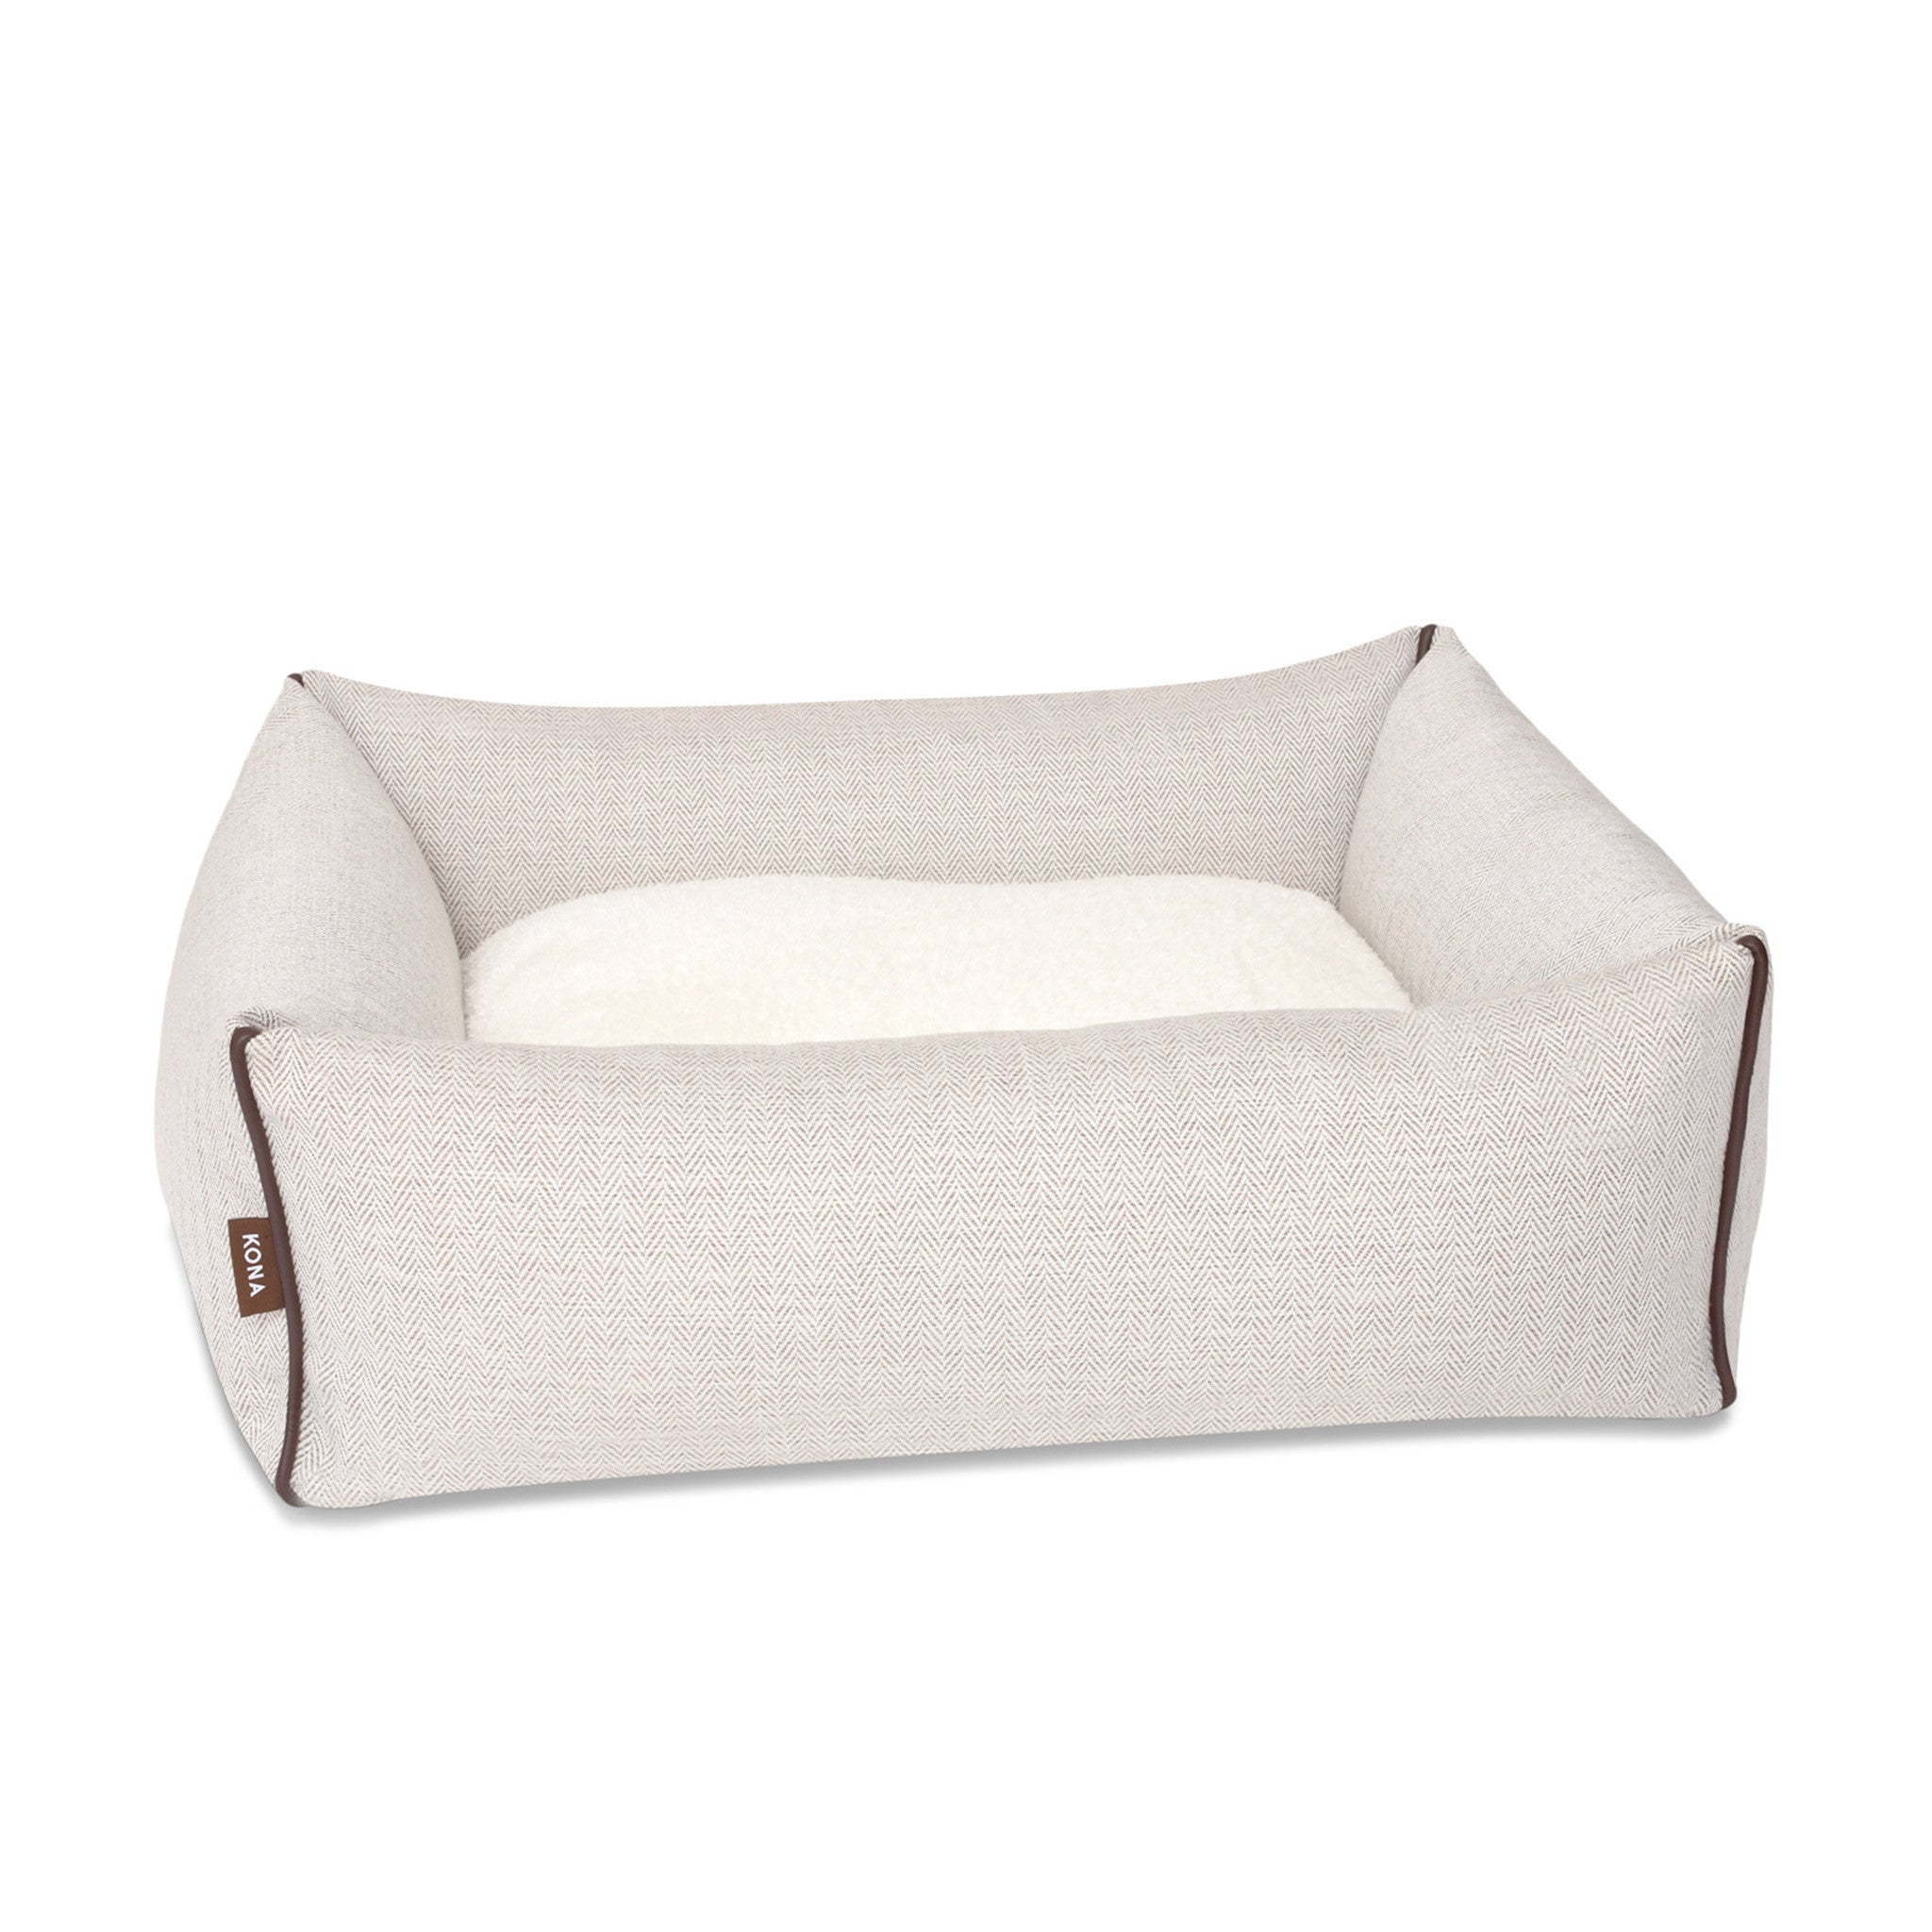 chocolate beds products lifestyle dog puff orthopedic luxury animals bed katie ortho matter